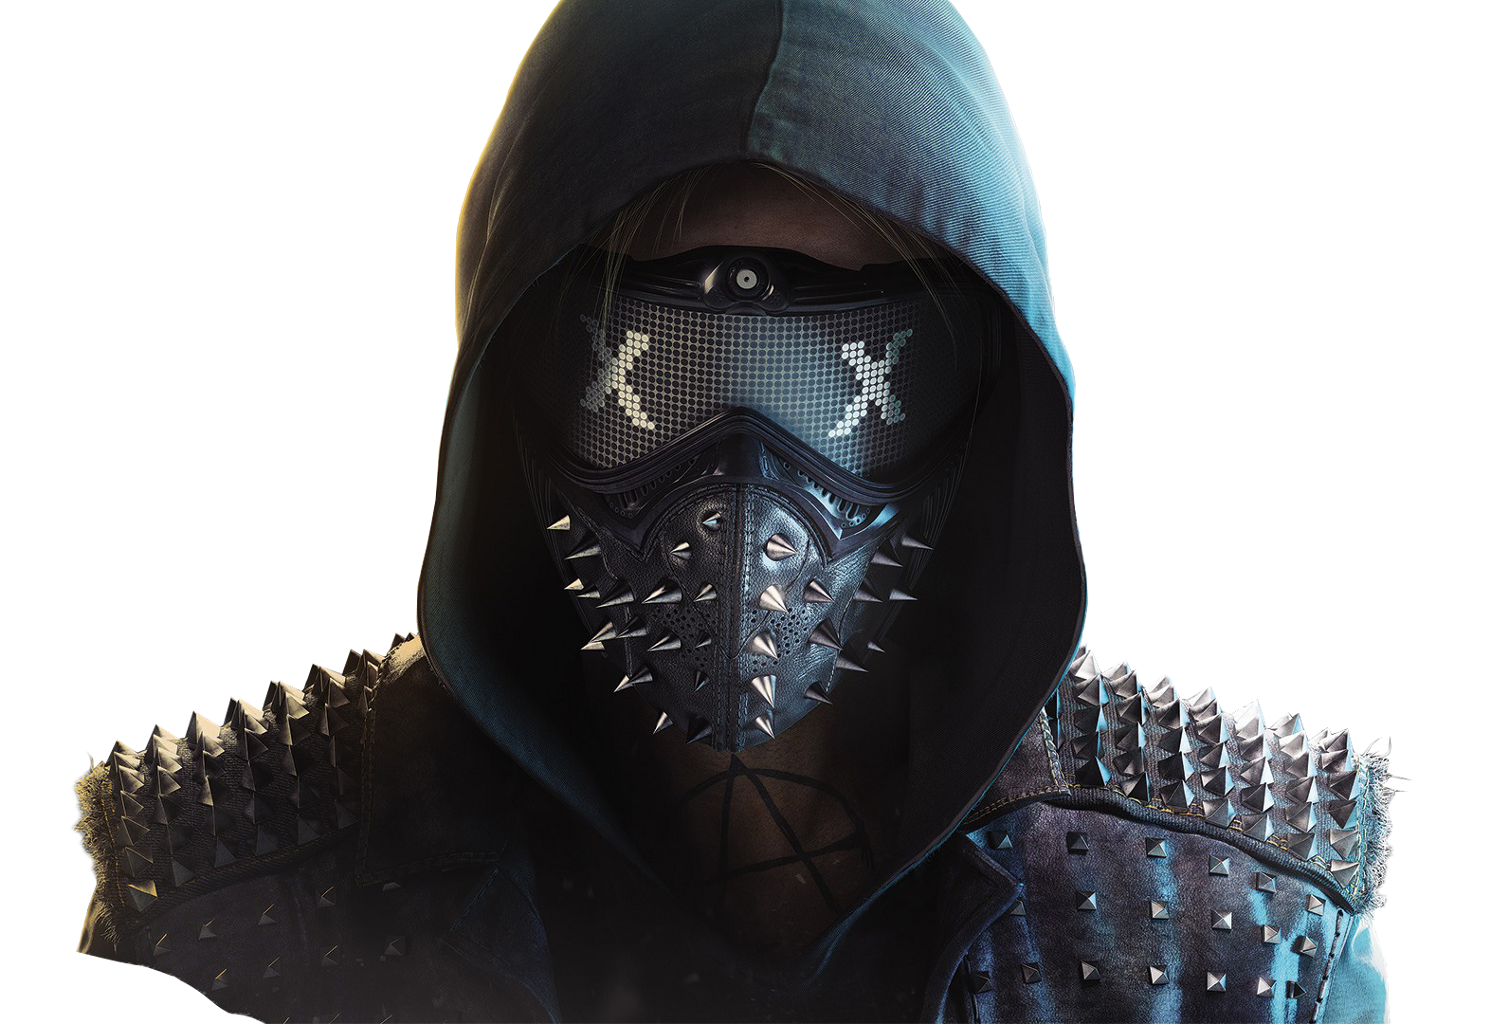 Wrench watch dogs 2 png. Watchdogs marcus wrenchwatchdogs tum